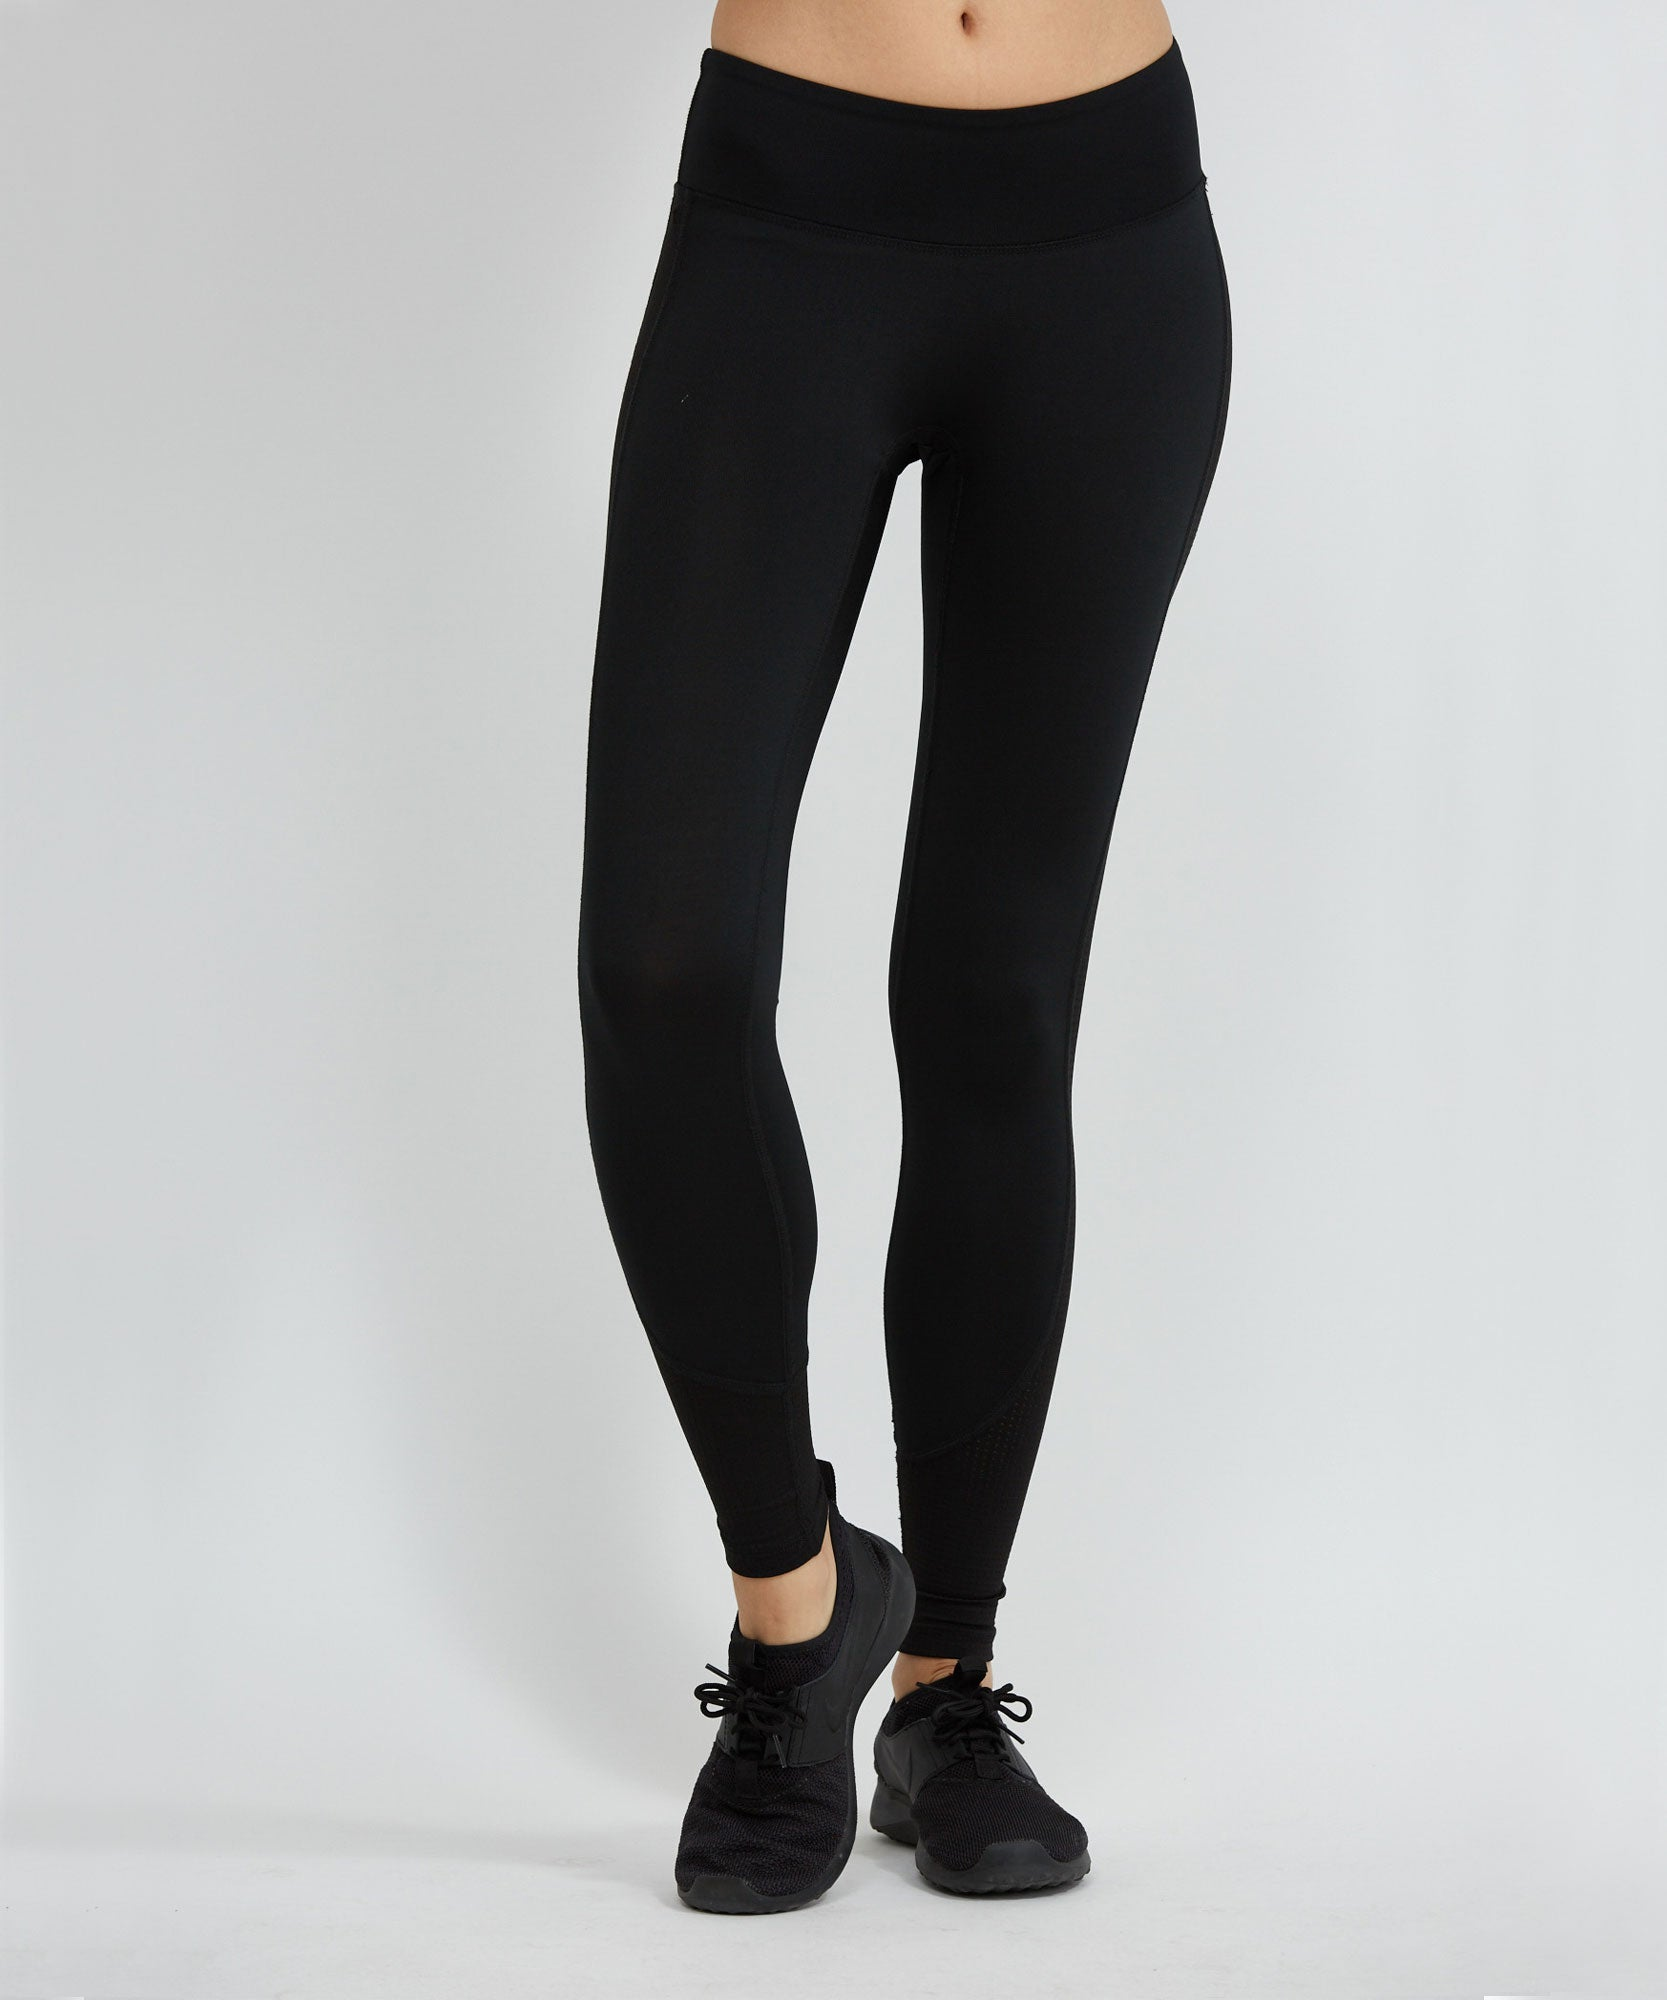 Velo 7/8 Legging - Black